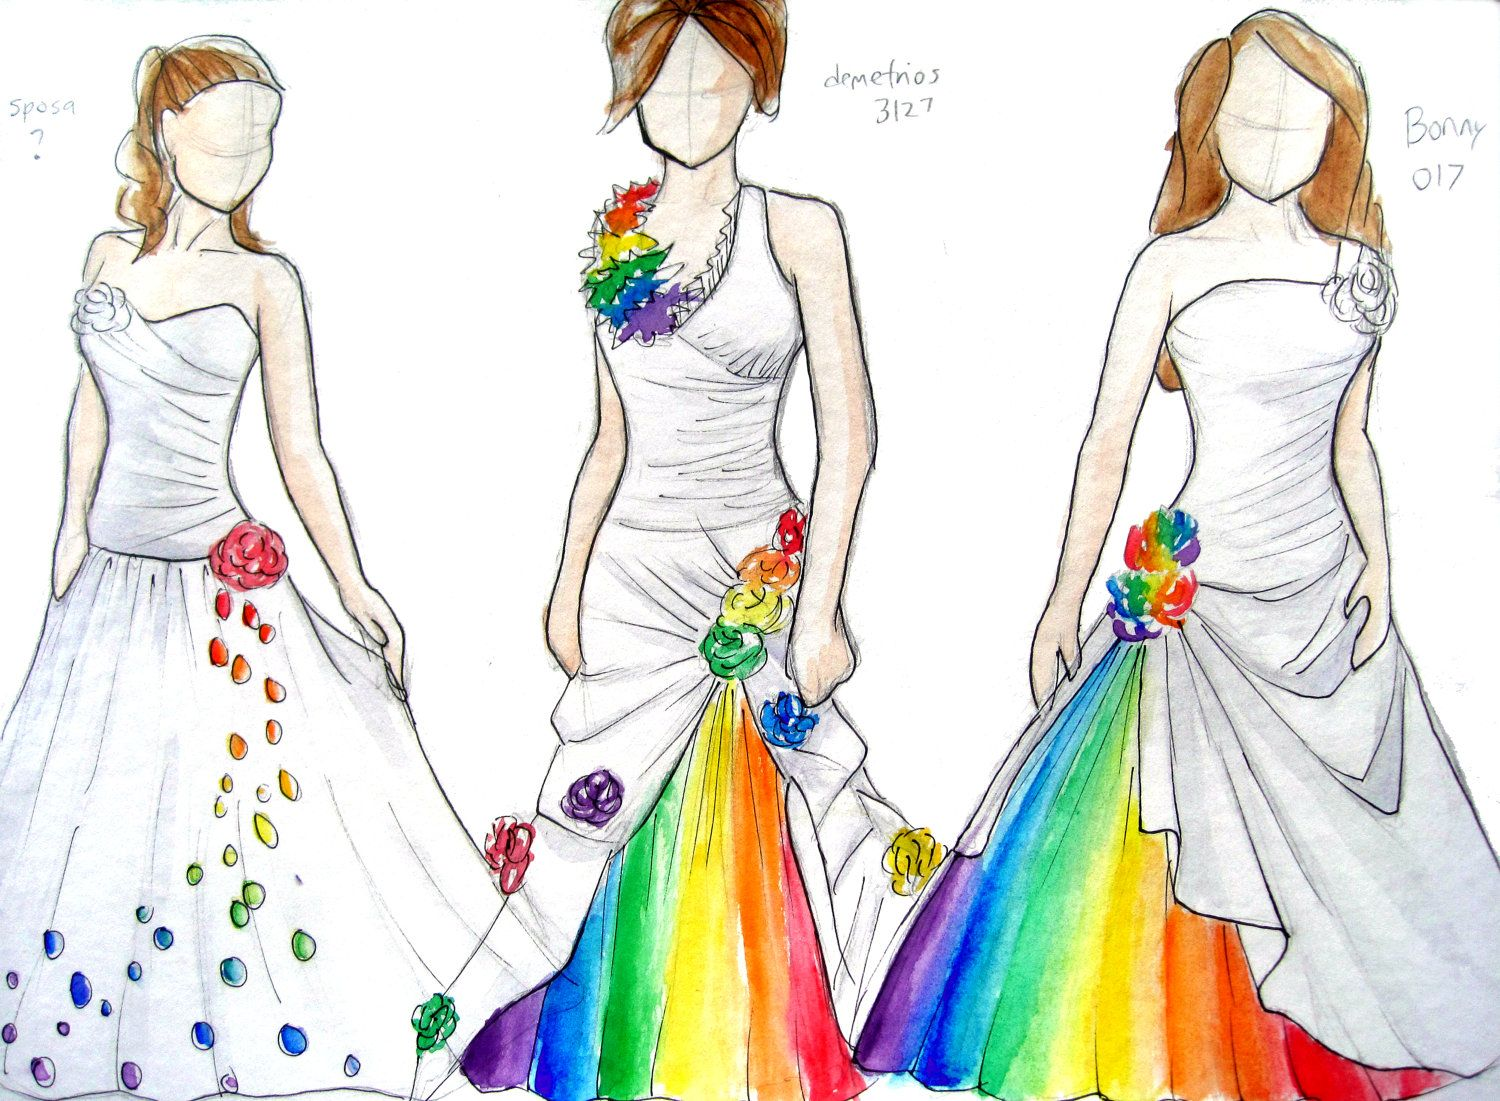 Pin by barbara dominguez on lesbimarried pinterest rainbow